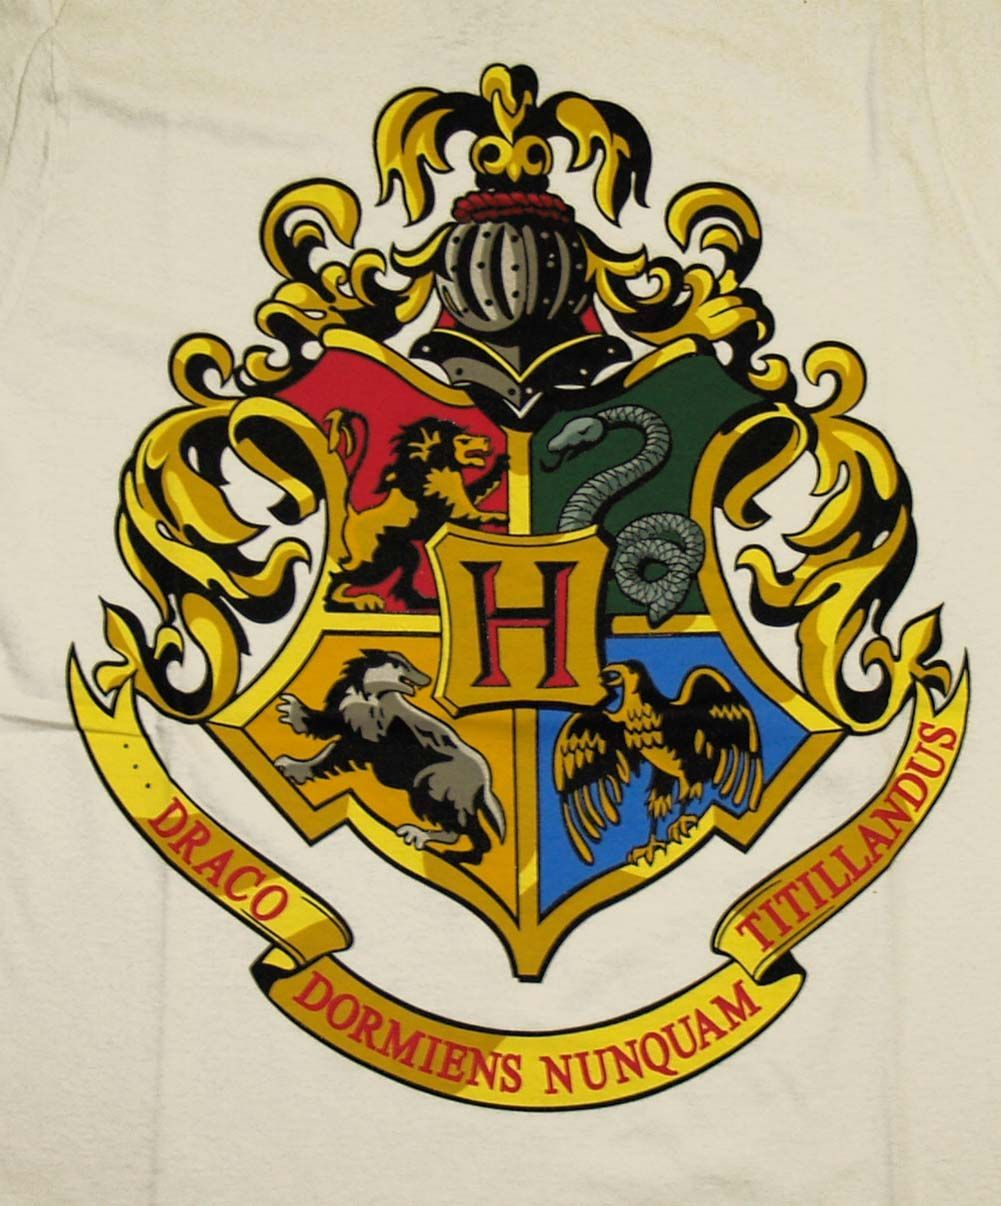 Harry Potter Gryffindor Crest Wallpapers Top Free Harry